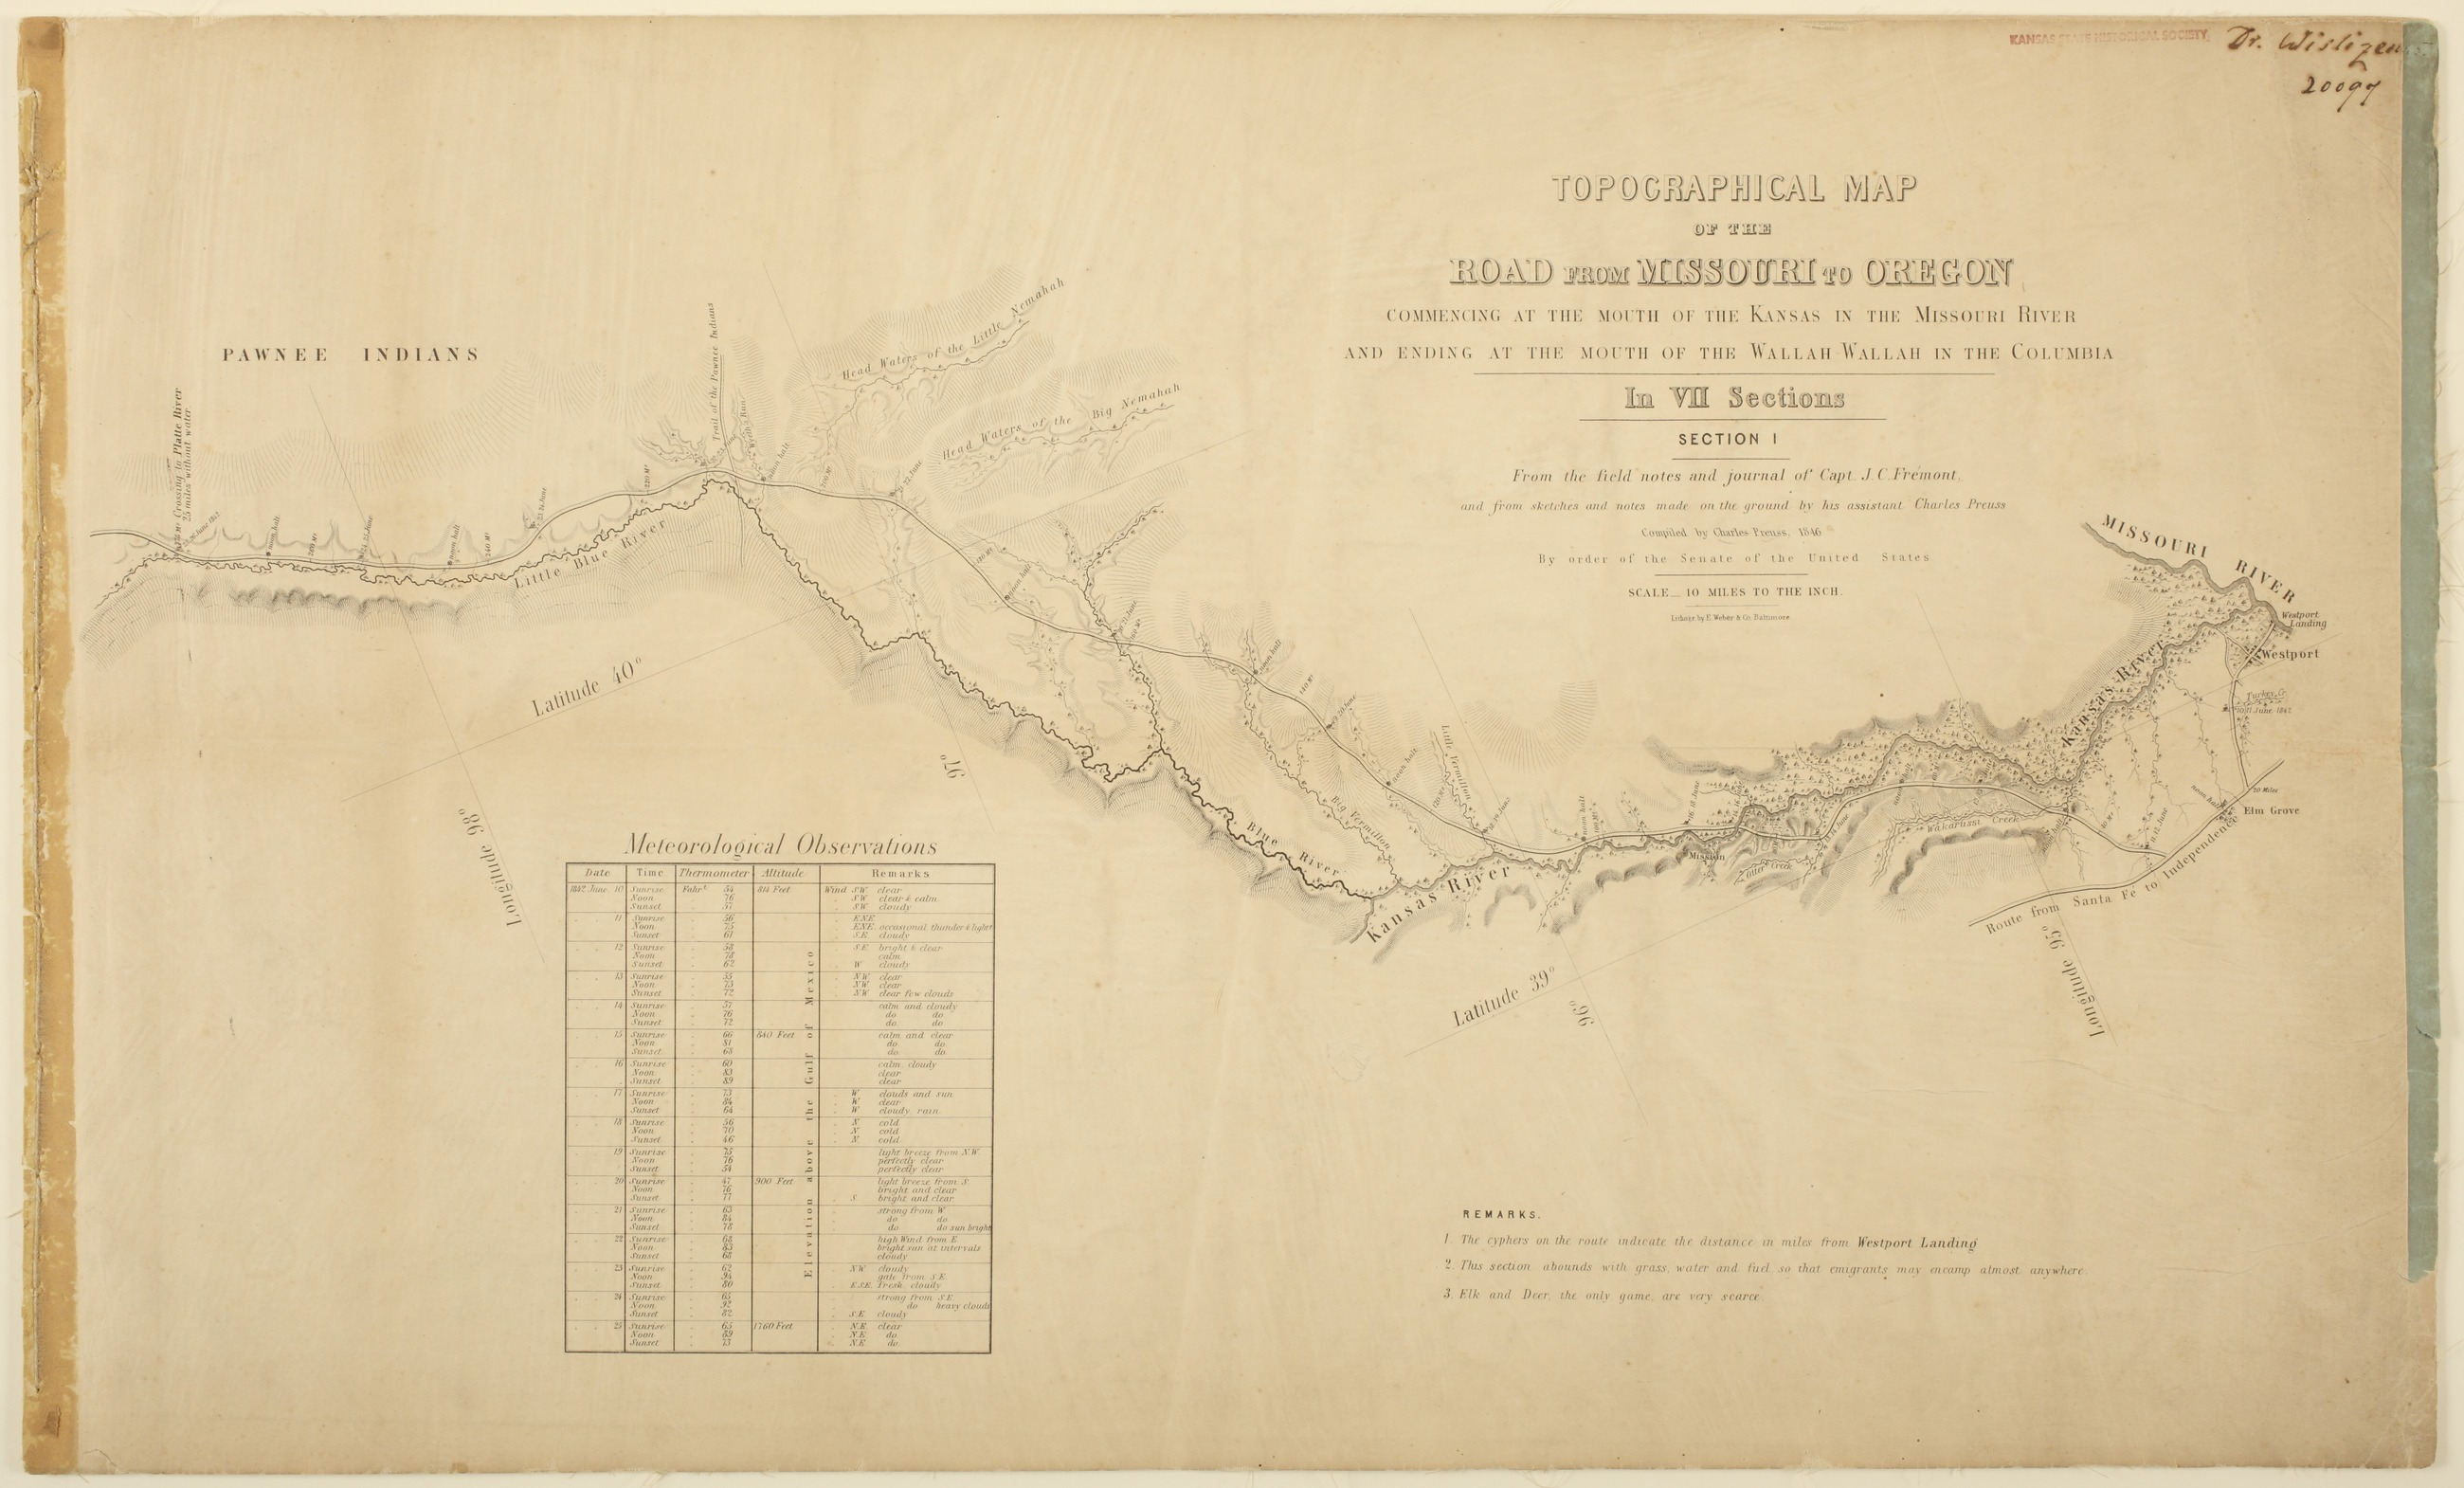 Topographic map of the road from Missouri to Oregon